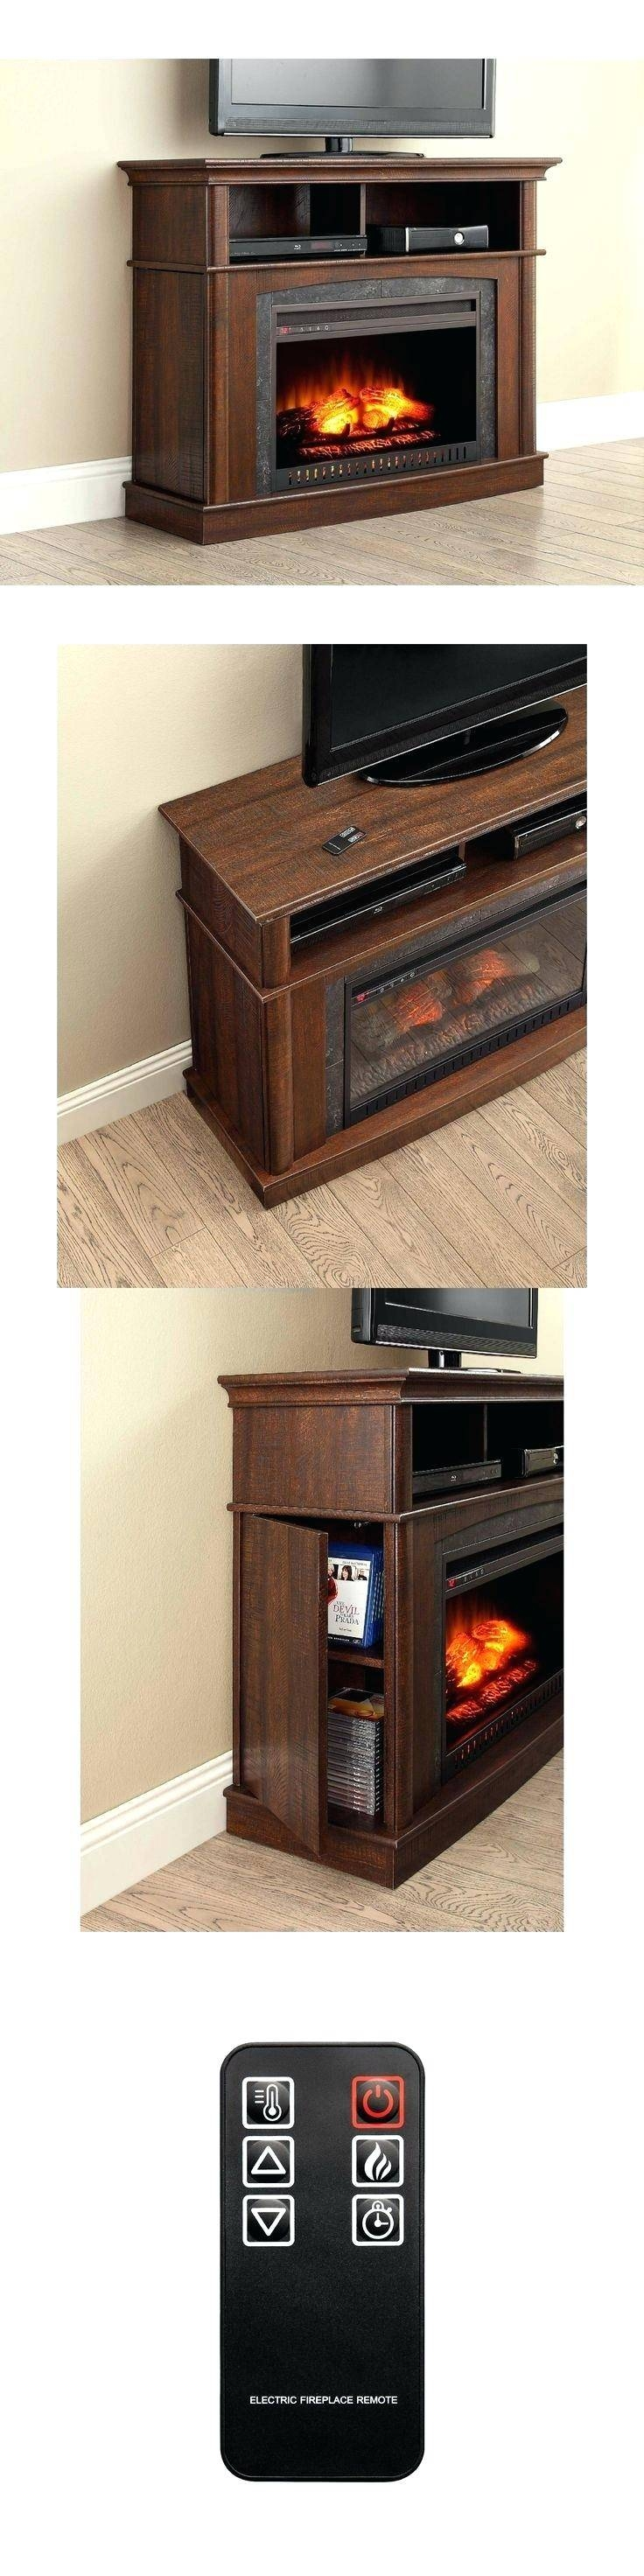 Tv Stand : Cozy Goodmans 20 Inch Tv Combo Vhs Tv Stand 40A 86 in Emerson Tv Stands (Image 14 of 15)